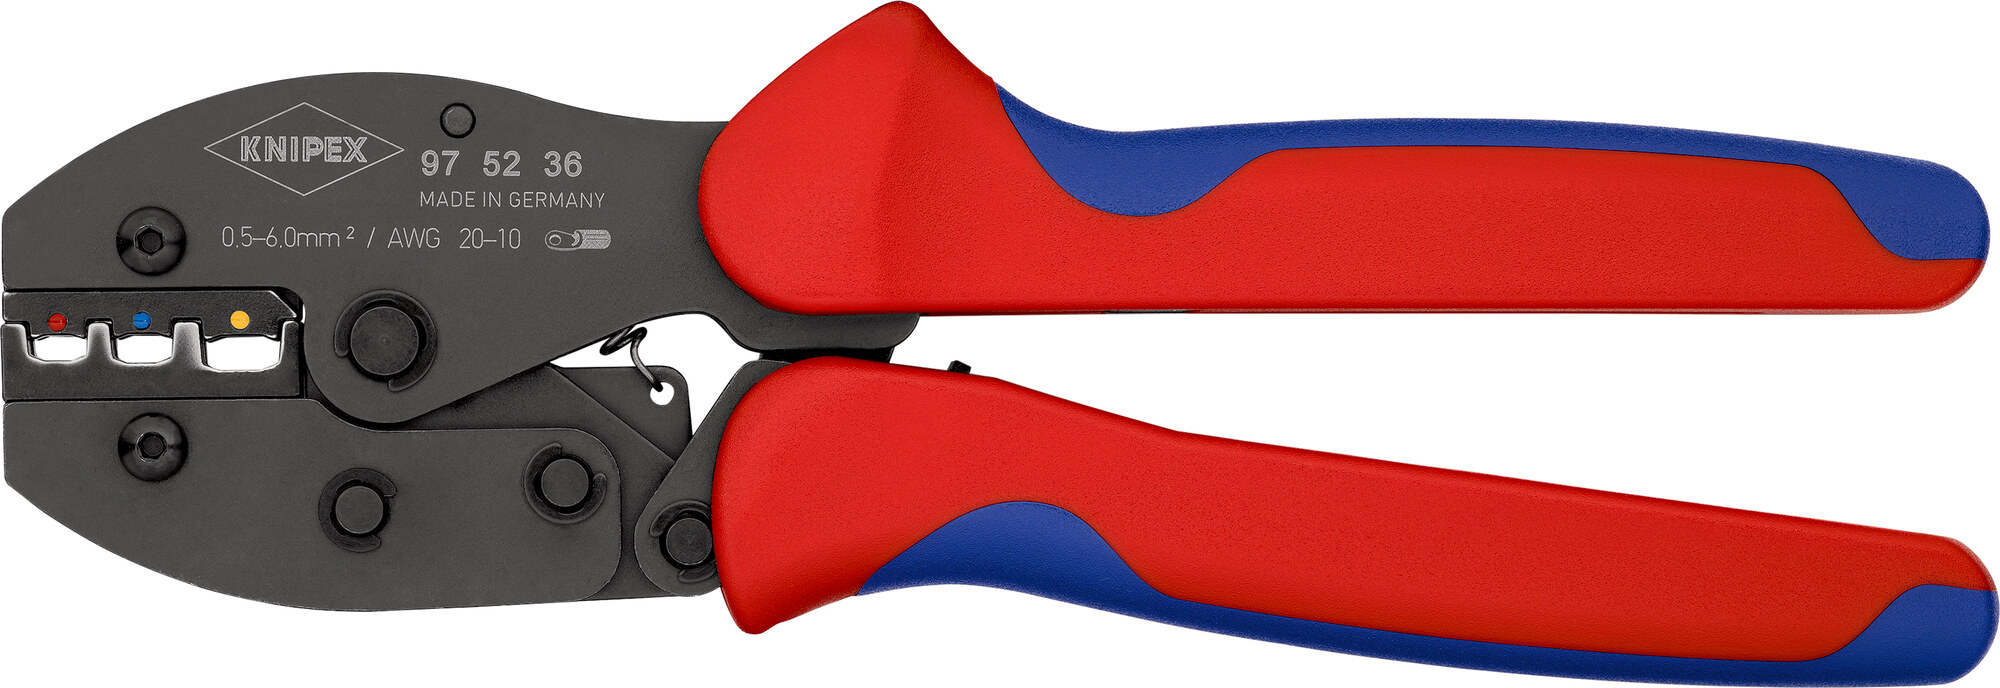 KNIPEX KNIPEX PreciForce® Crimping Pliers burnished with multi-component grips 220 mm, No https://youtu.be/tuUnHmDM2Q0